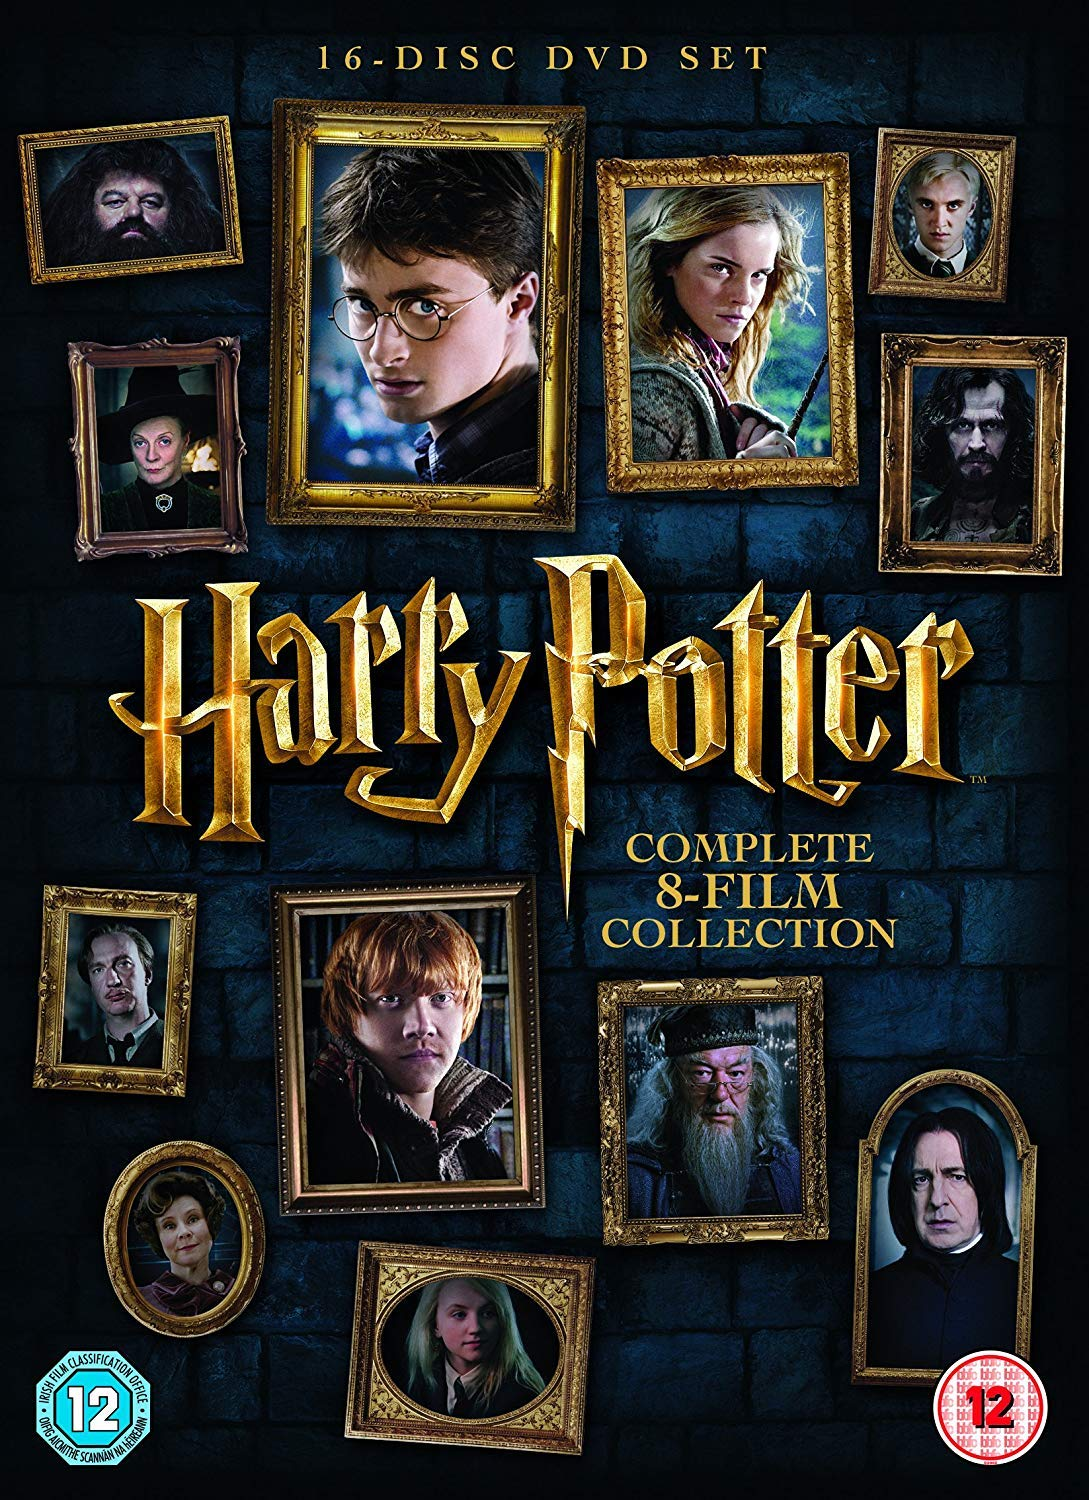 Harry Potter The Complete 8 Movies Collection Year 1 To 7 Part 1 2 All Parts 1 To 8 Dvd Digital Download Uv 16 Disc Box Set Slipcase Packaging